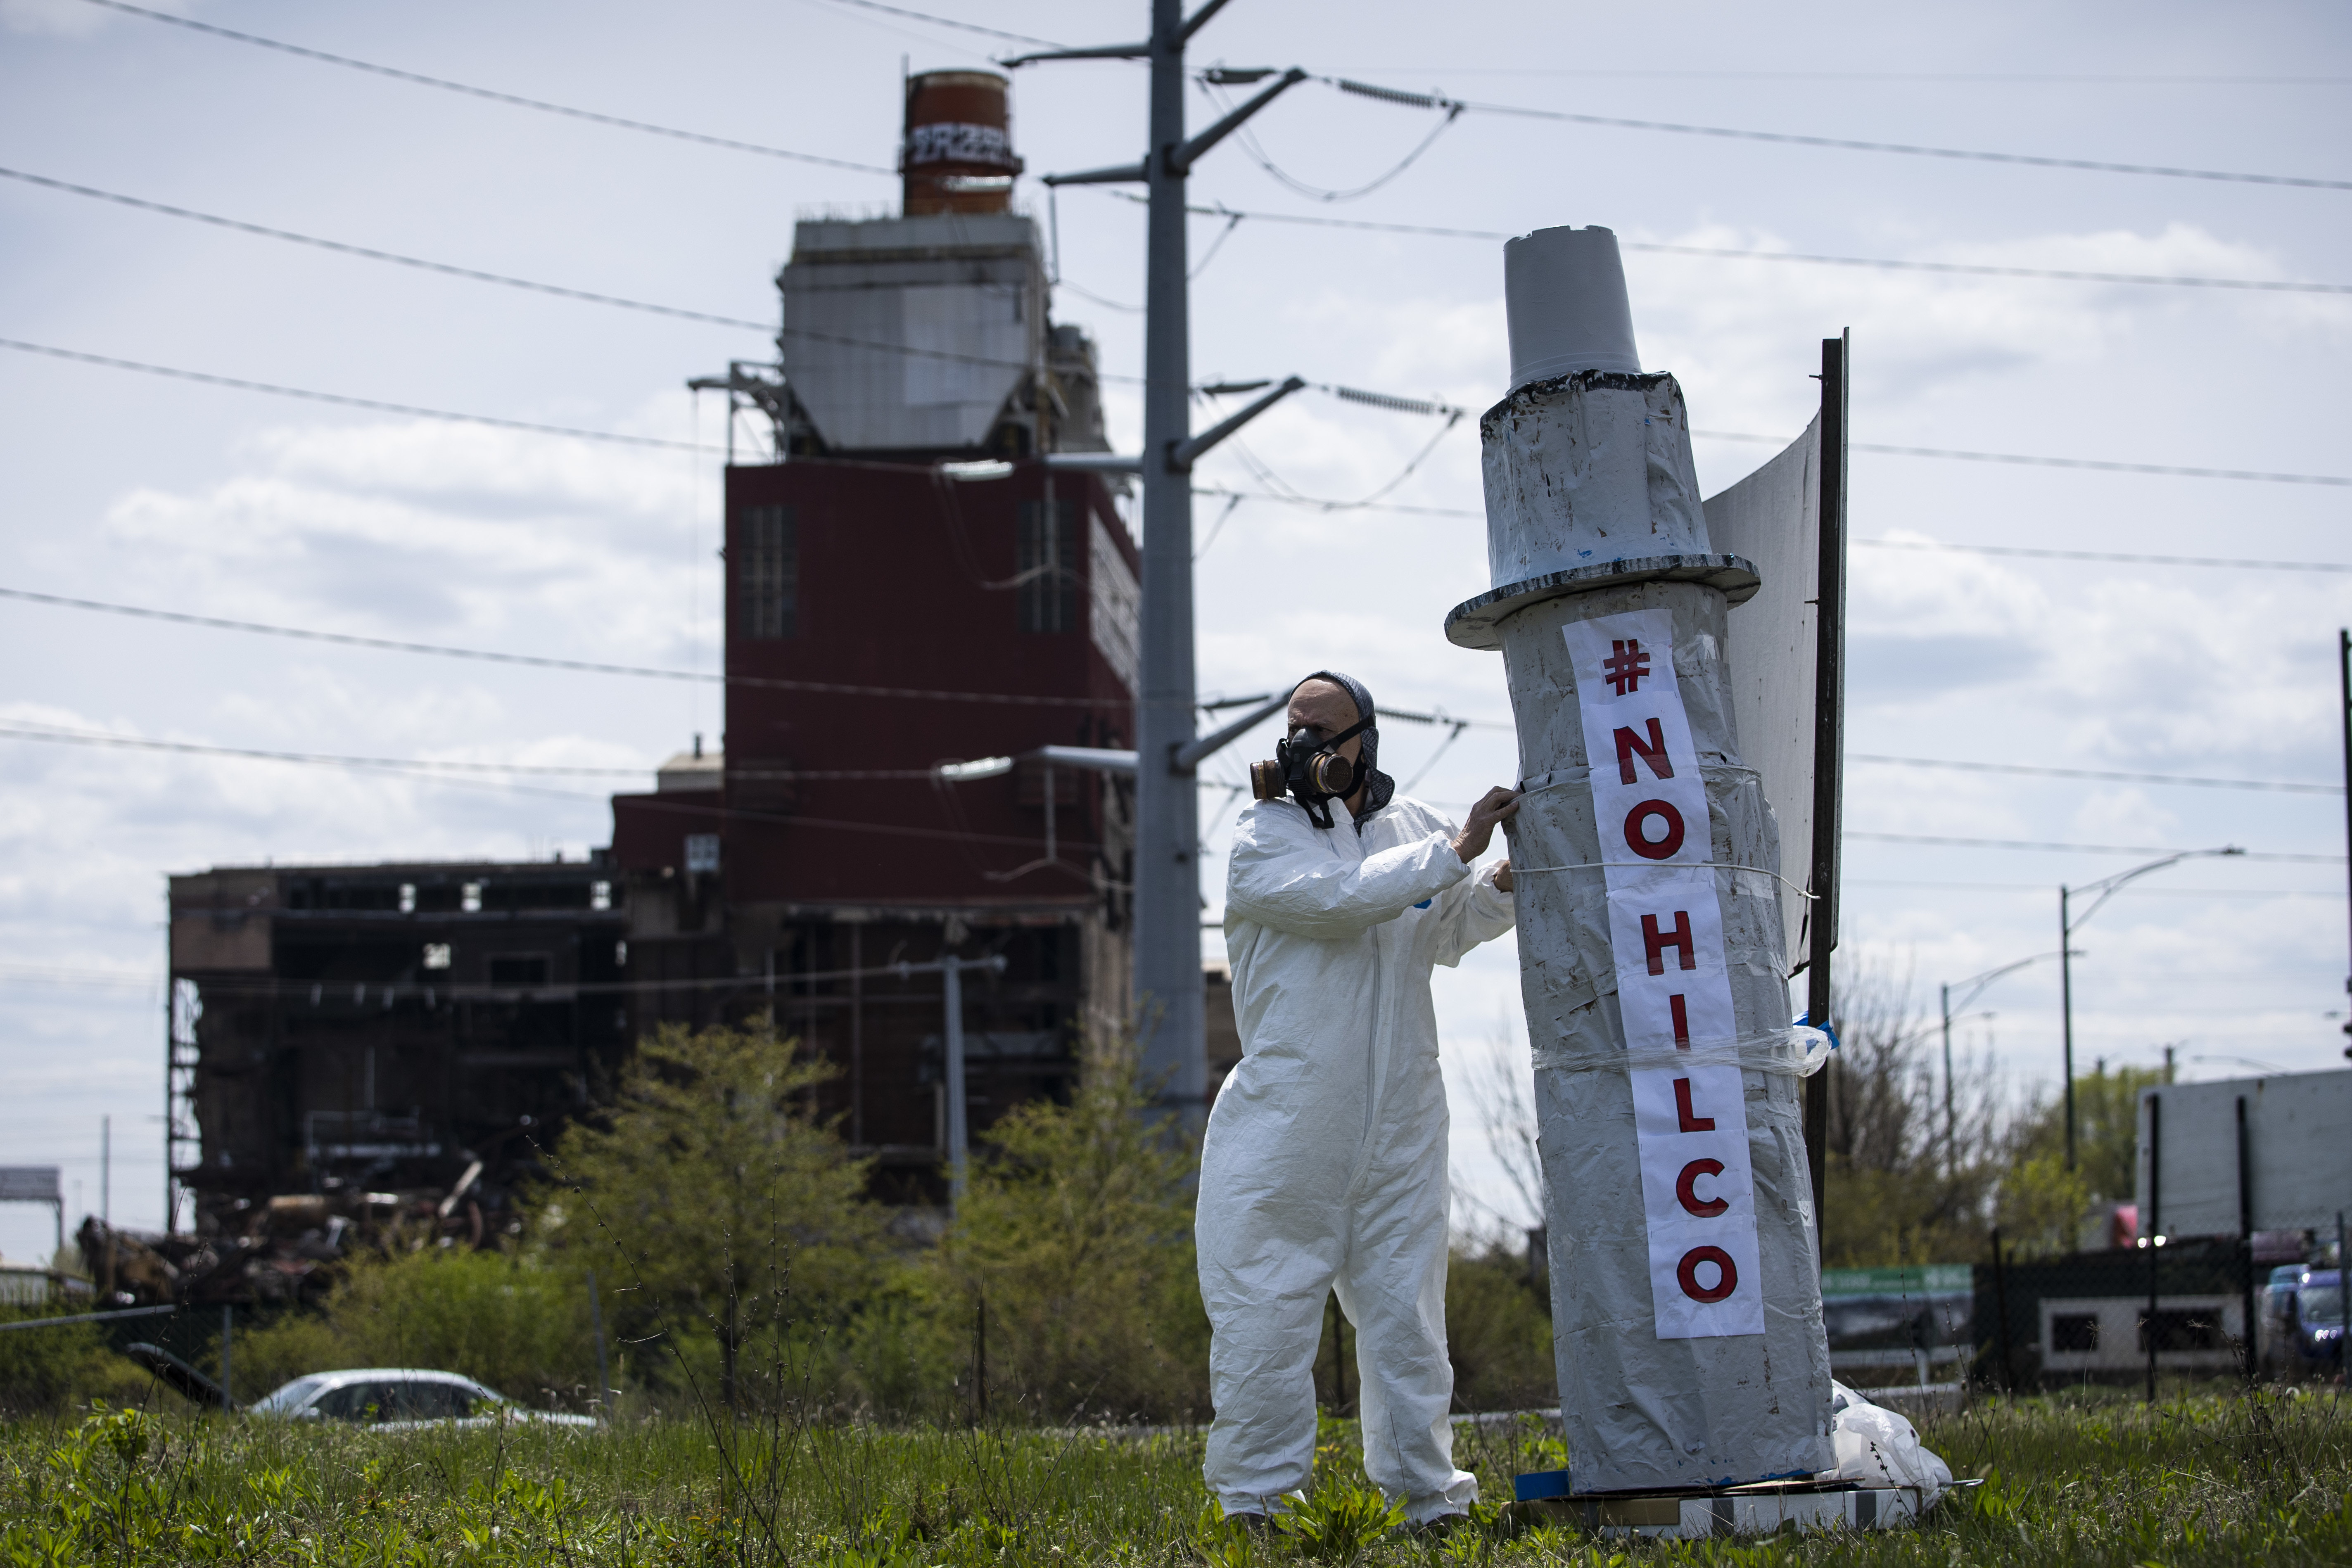 A man protests outside the site of the closed Crawford power plant near West 33rd Street and South Pulaski Road earlier this month.